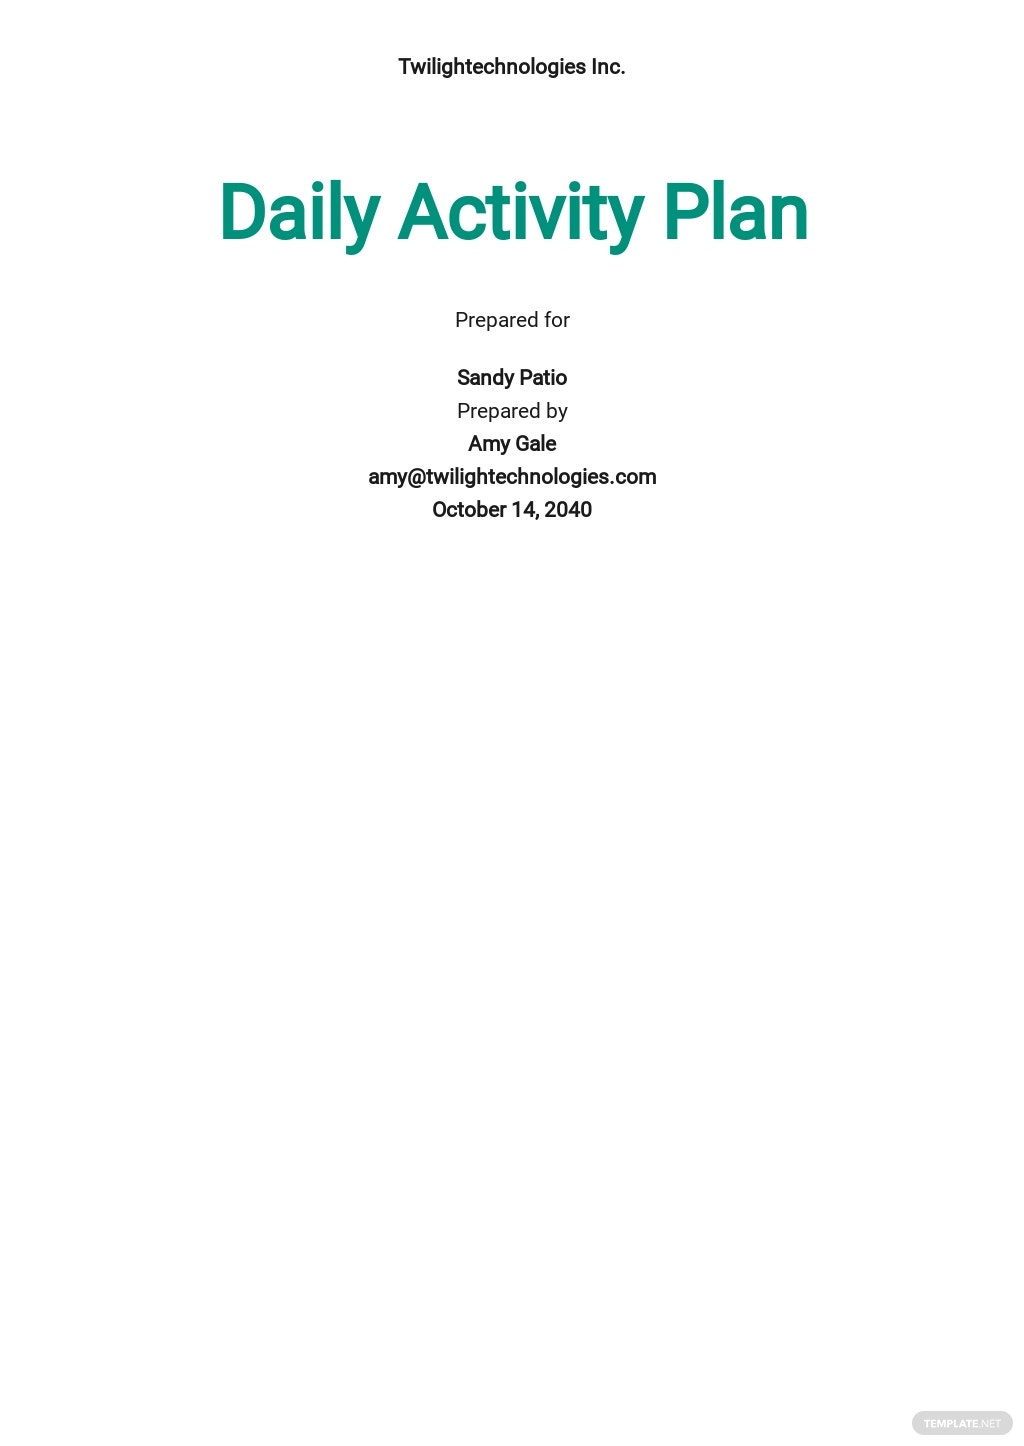 Daily Activity Plan Template